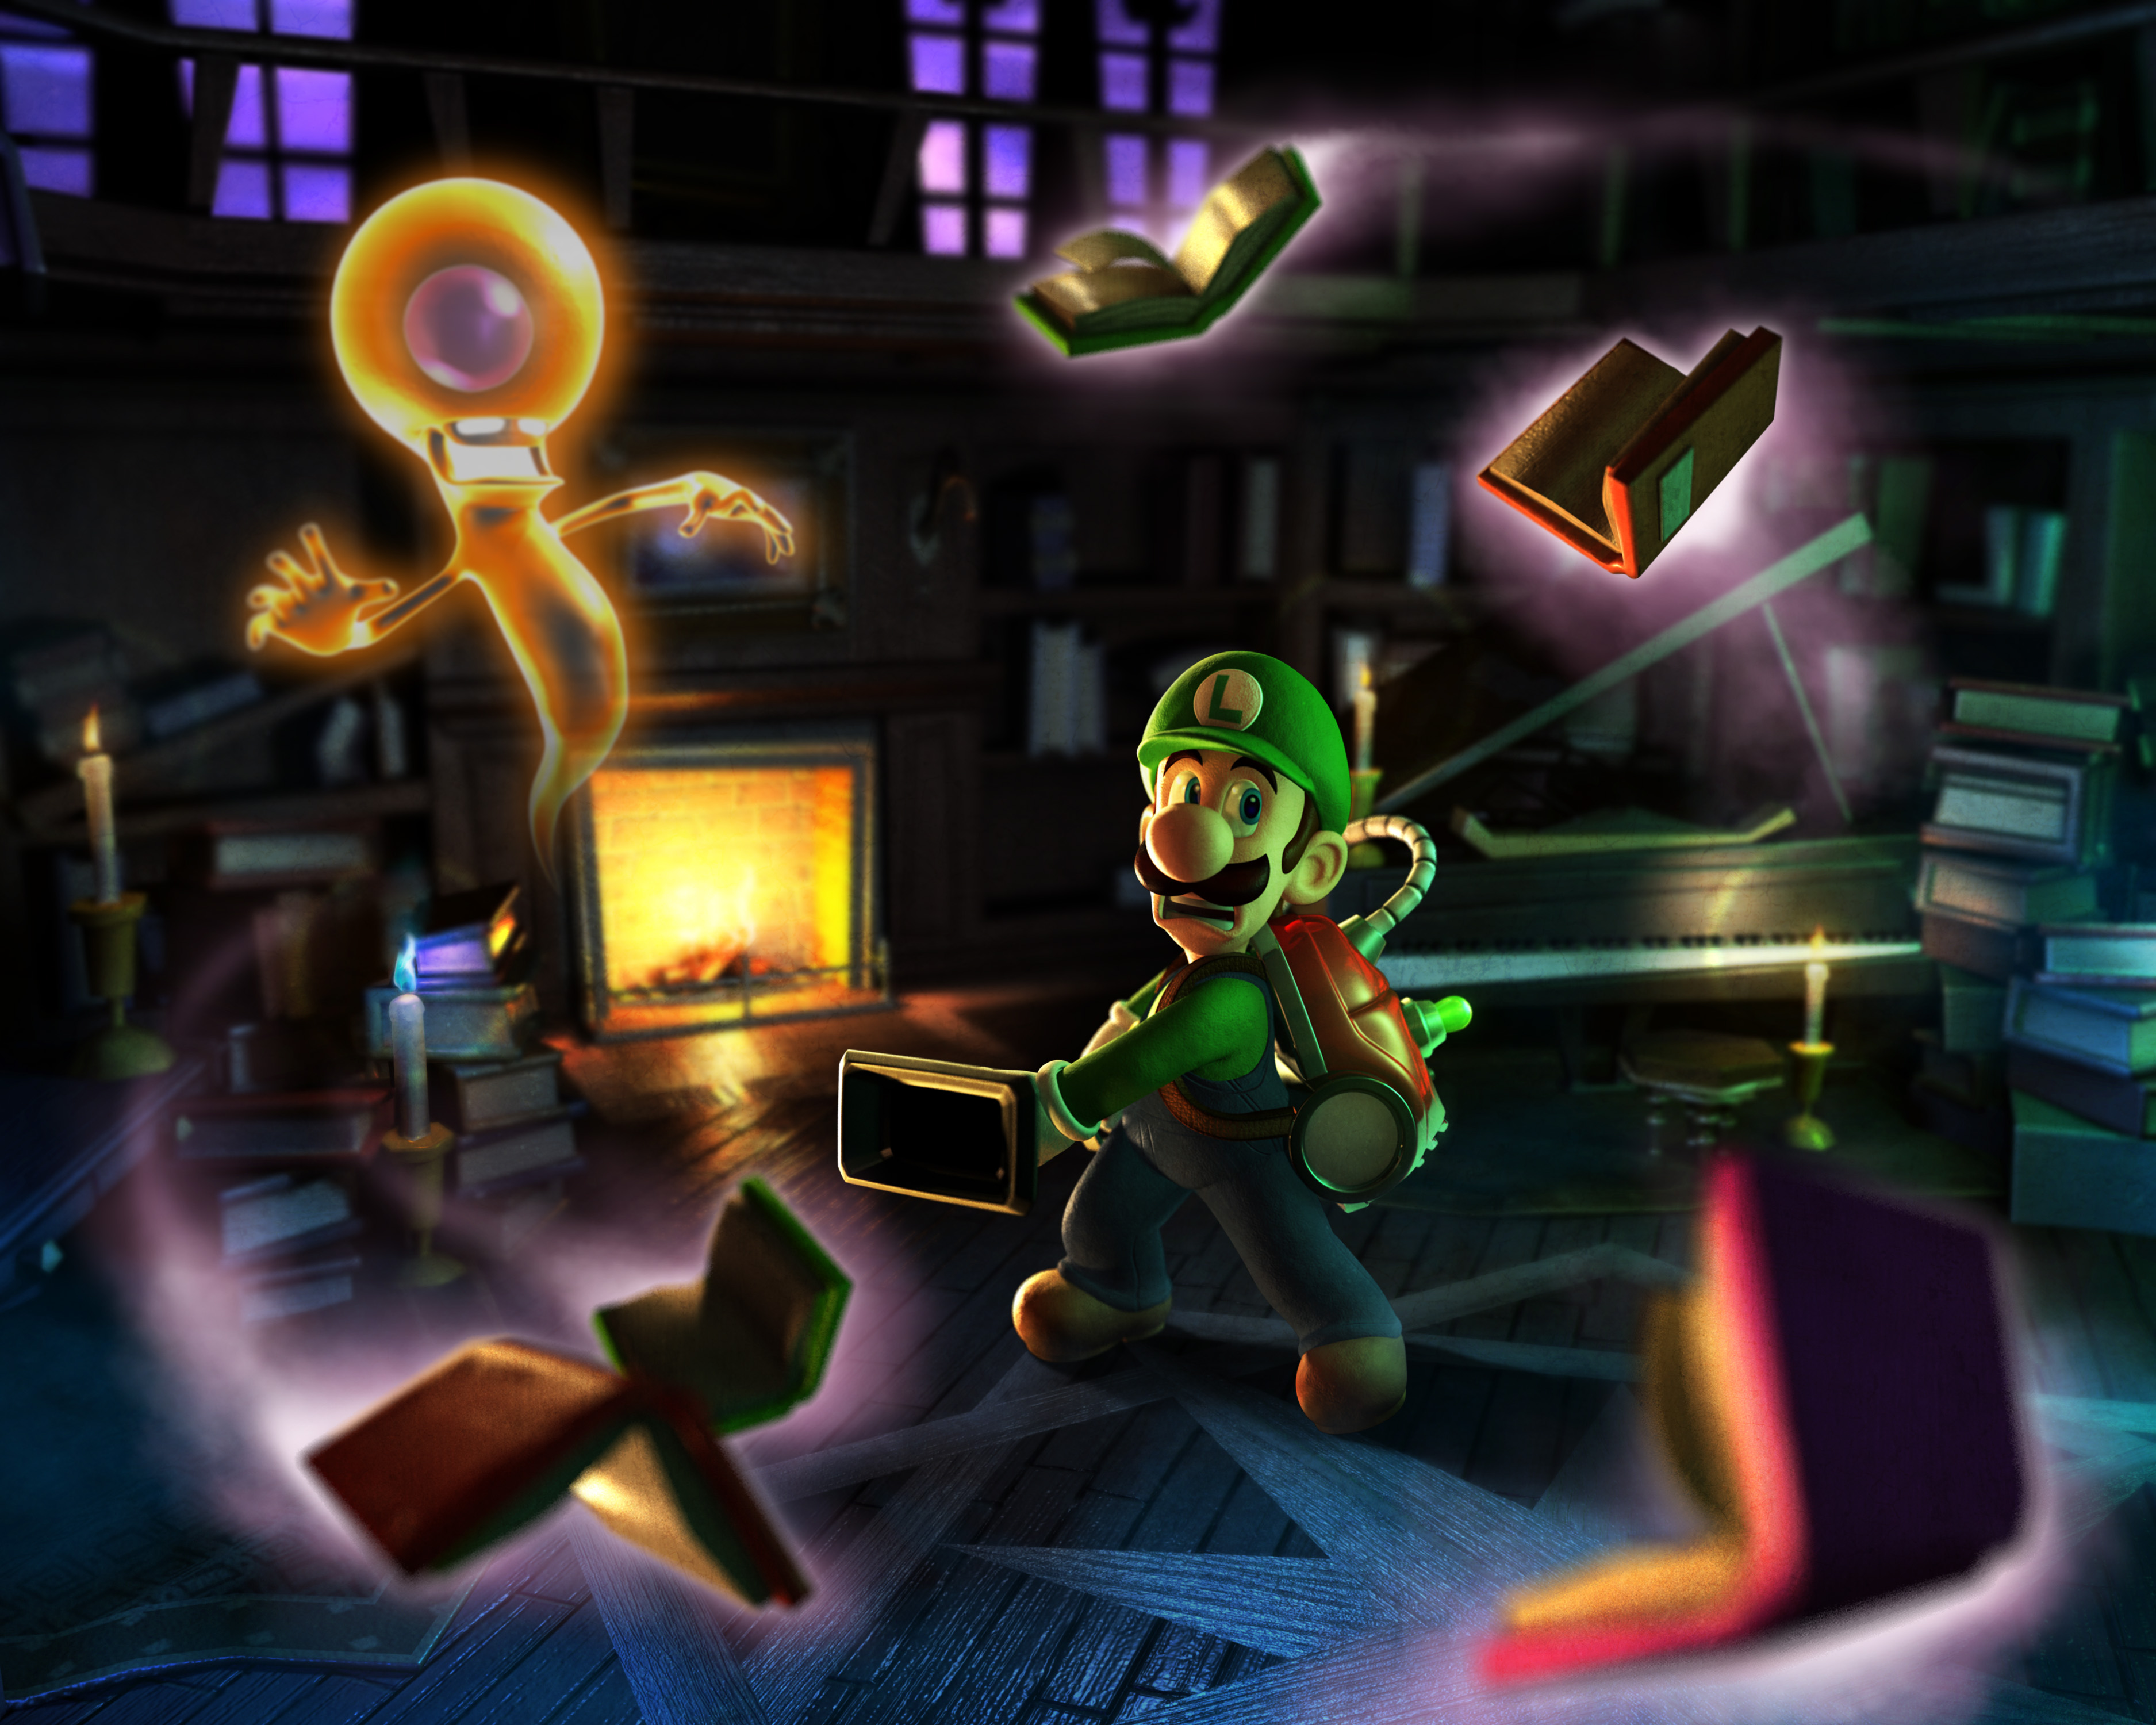 High Resolution Wallpaper | Luigi's Mansion 2 3750x3000 px